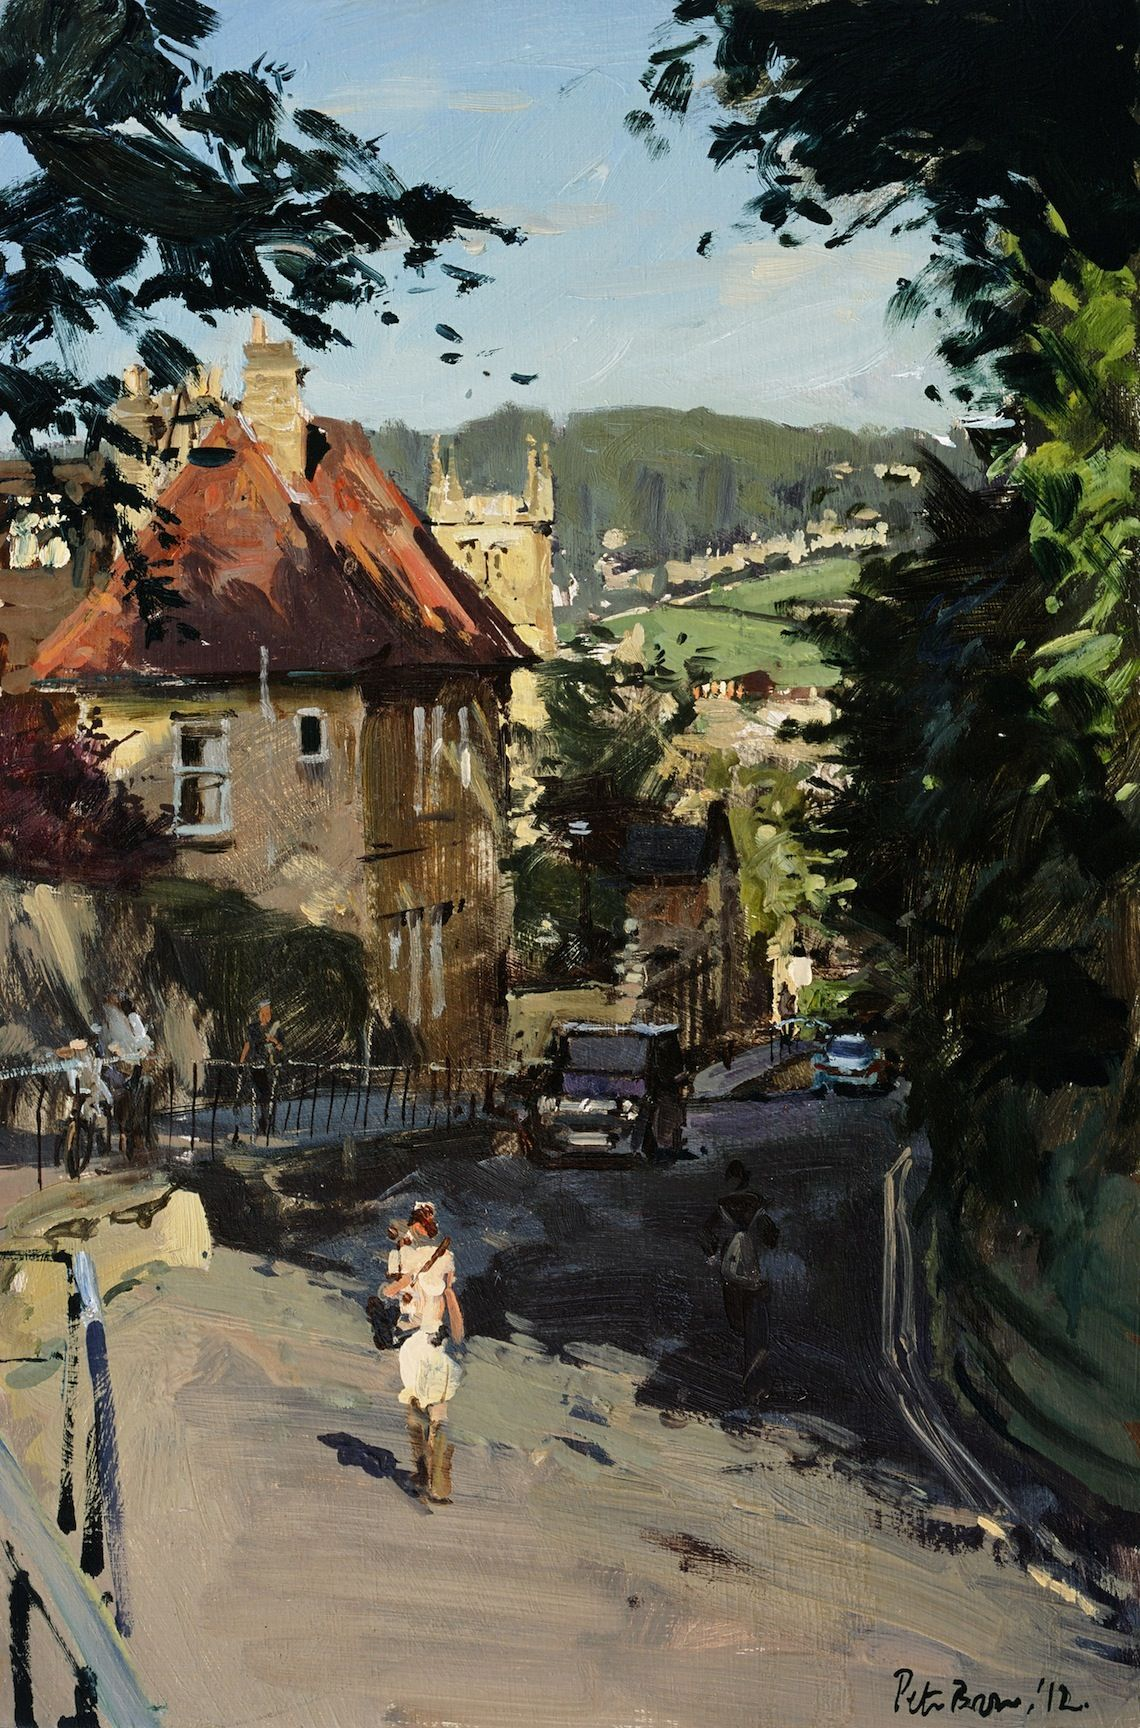 Peter Brown NEAC: Pictures | Art - 460.9KB